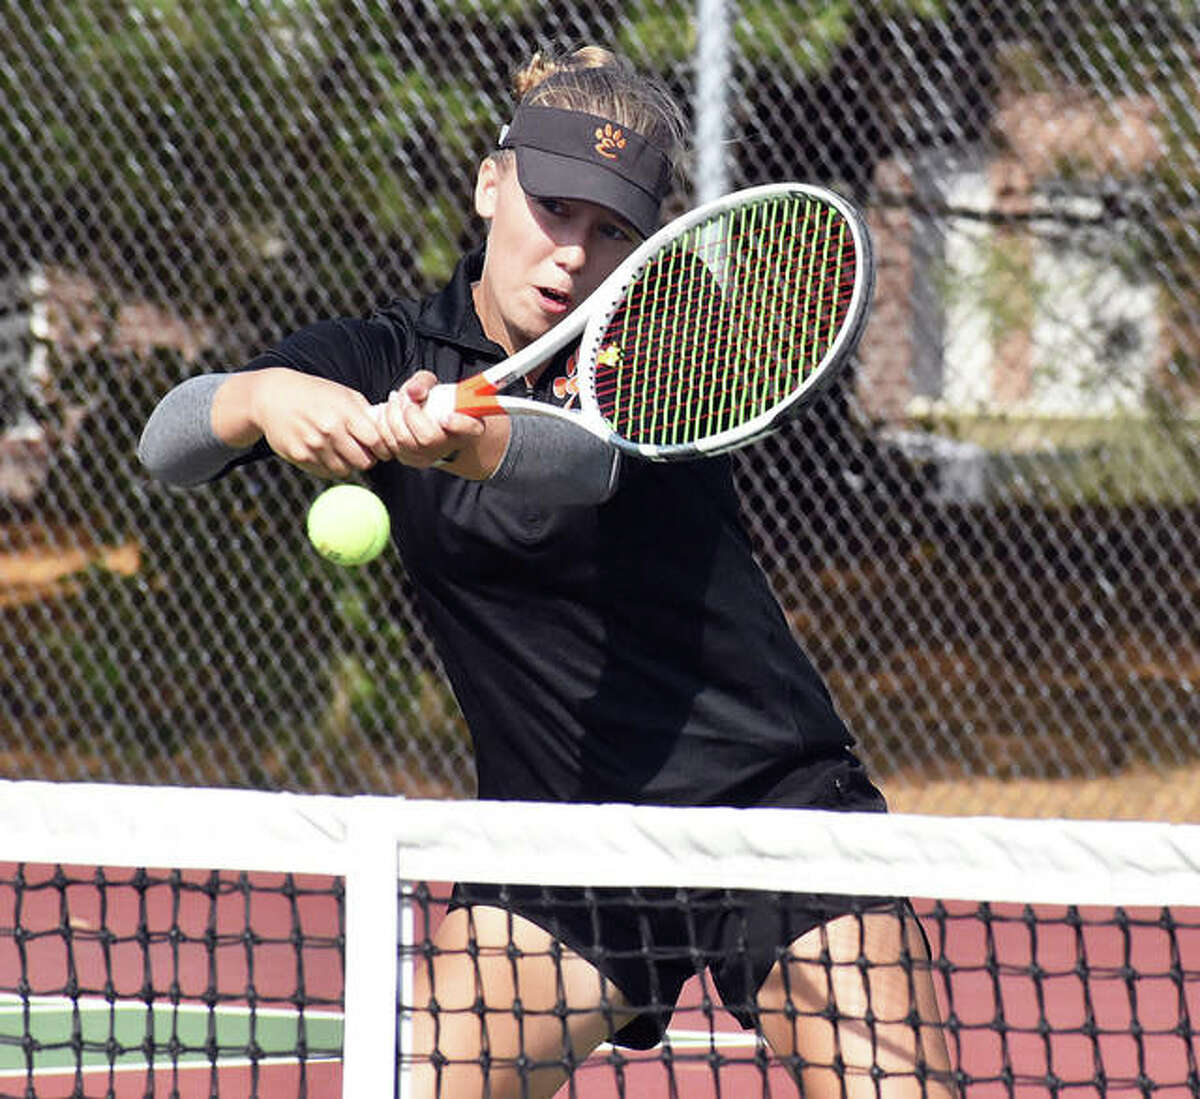 Edwardsville's Hannah Colbert returns a shot during her doubles match Saturday at the Edwardsville Class 2A Sectional at the EHS courts in Edwardsville. Colbert teamed with Chloe Trimpe to win the doubles championship.